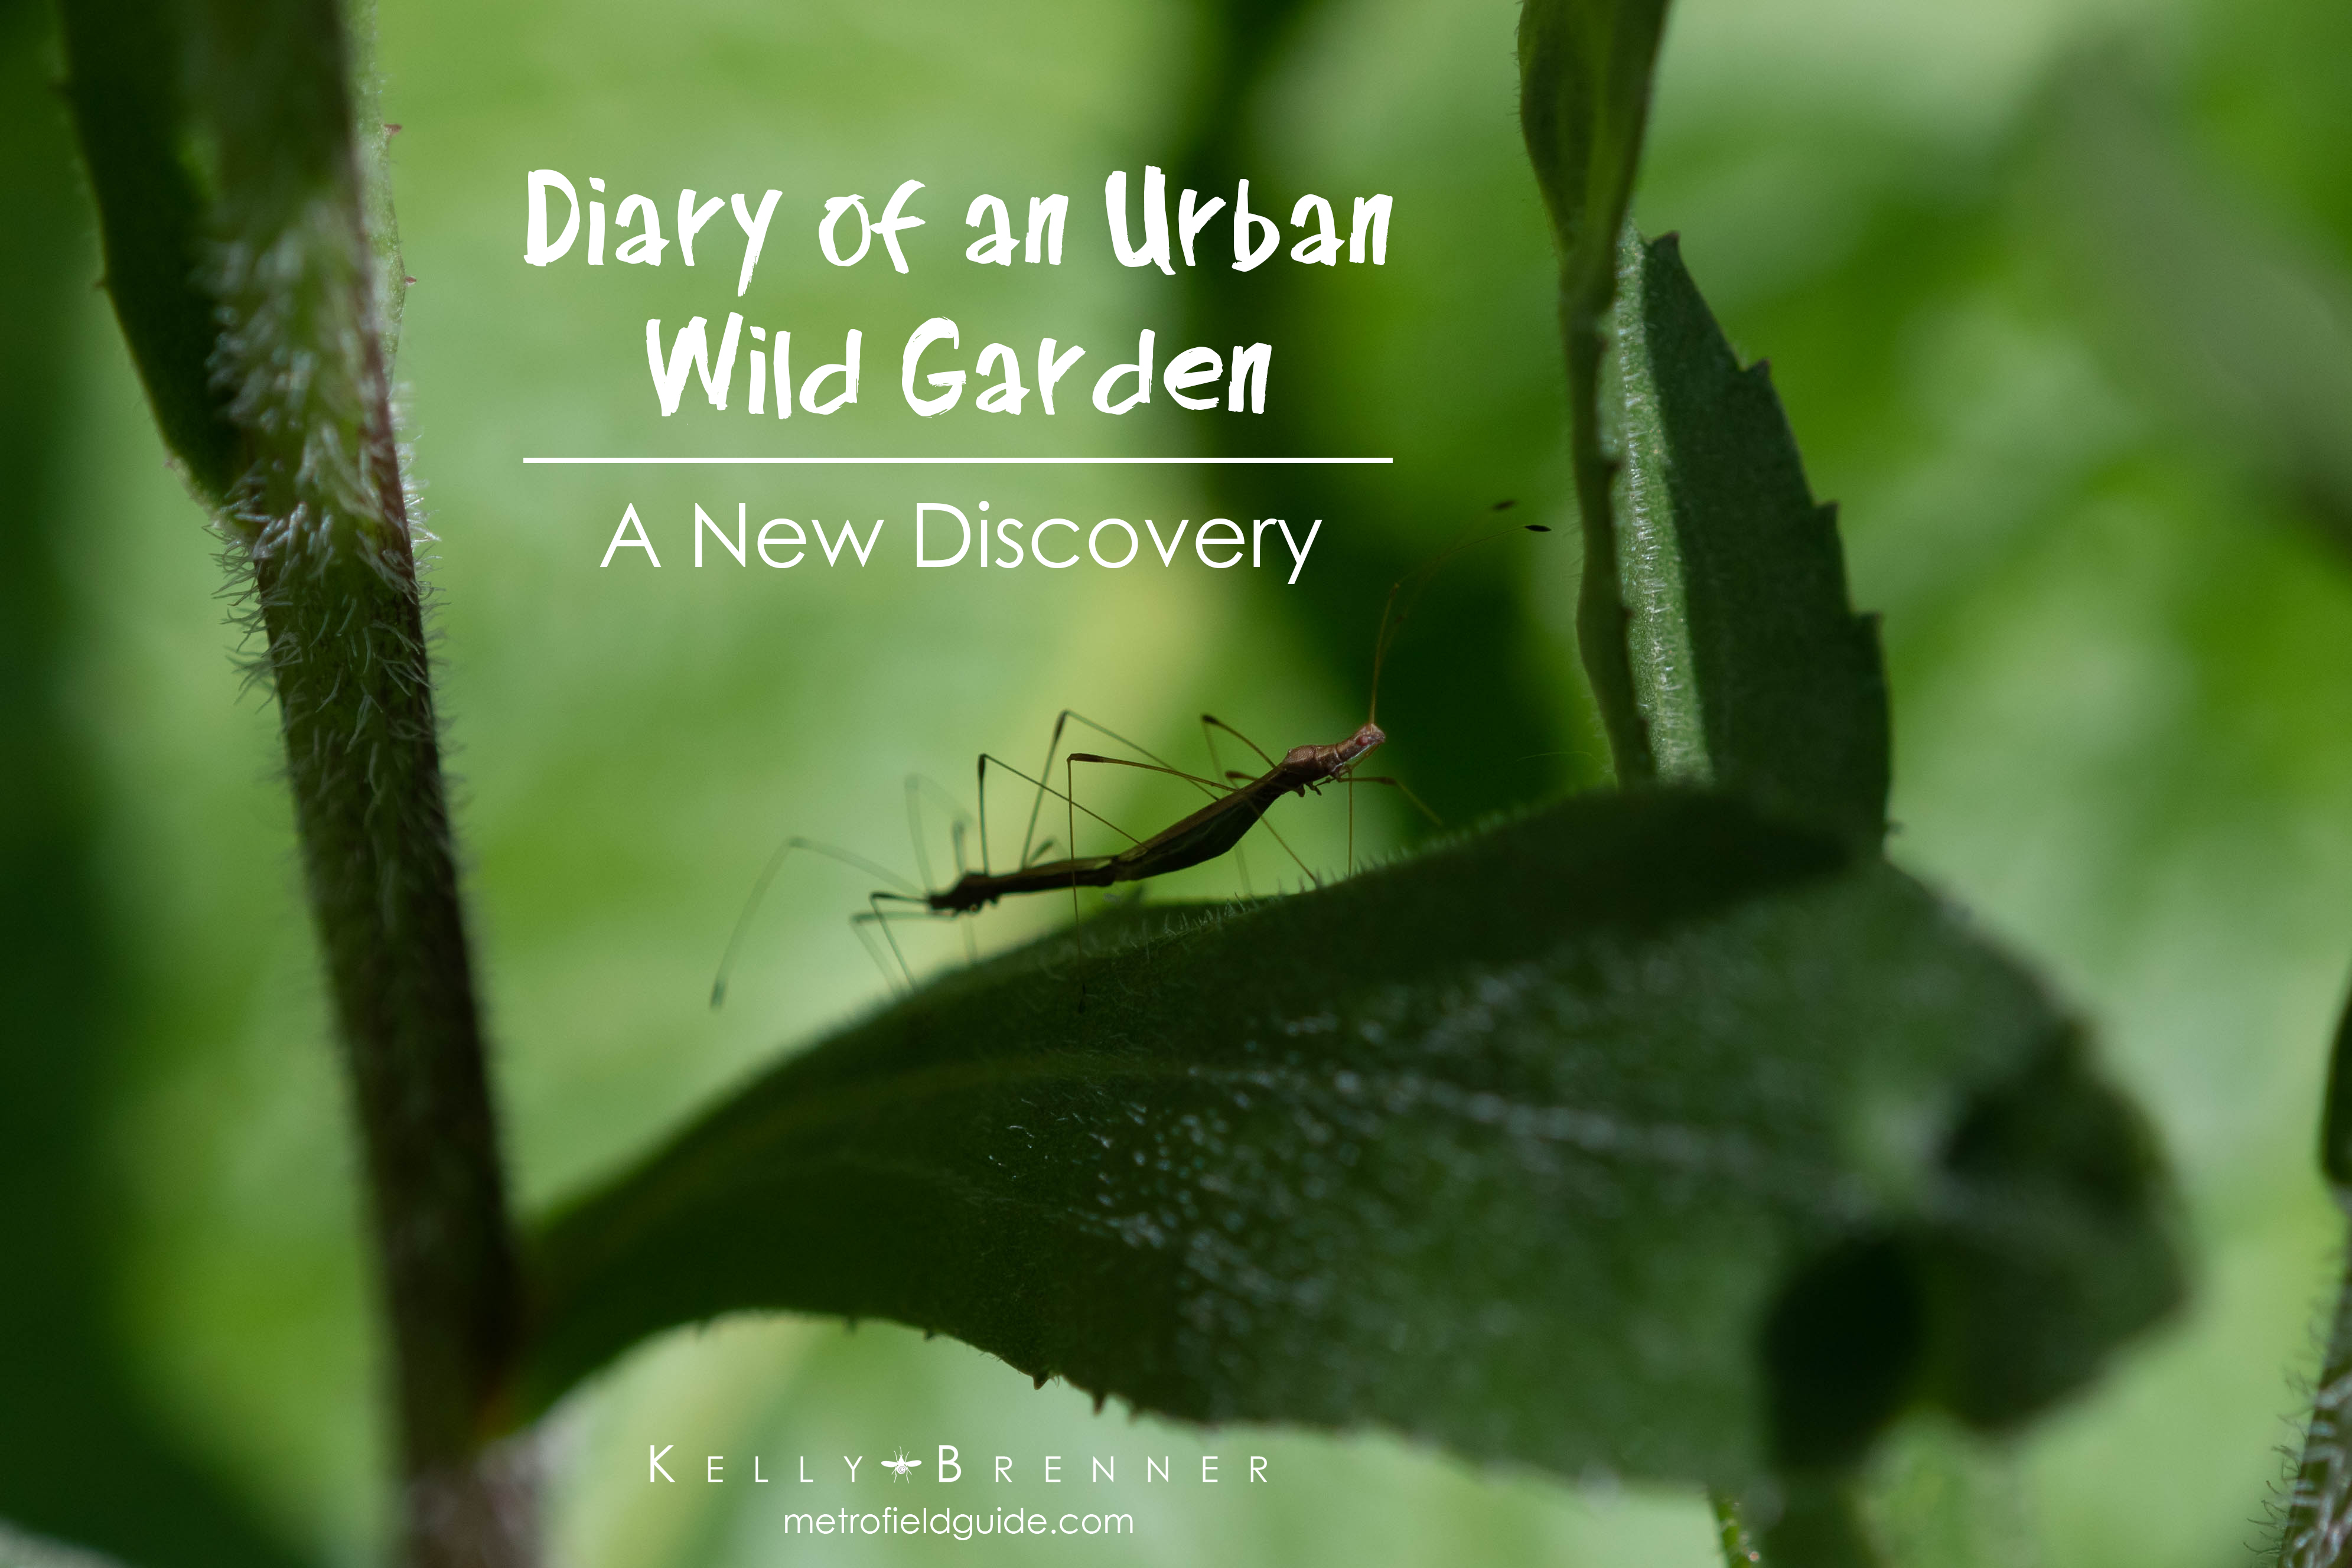 Diary of an Urban Wild Garden: A New Discovery